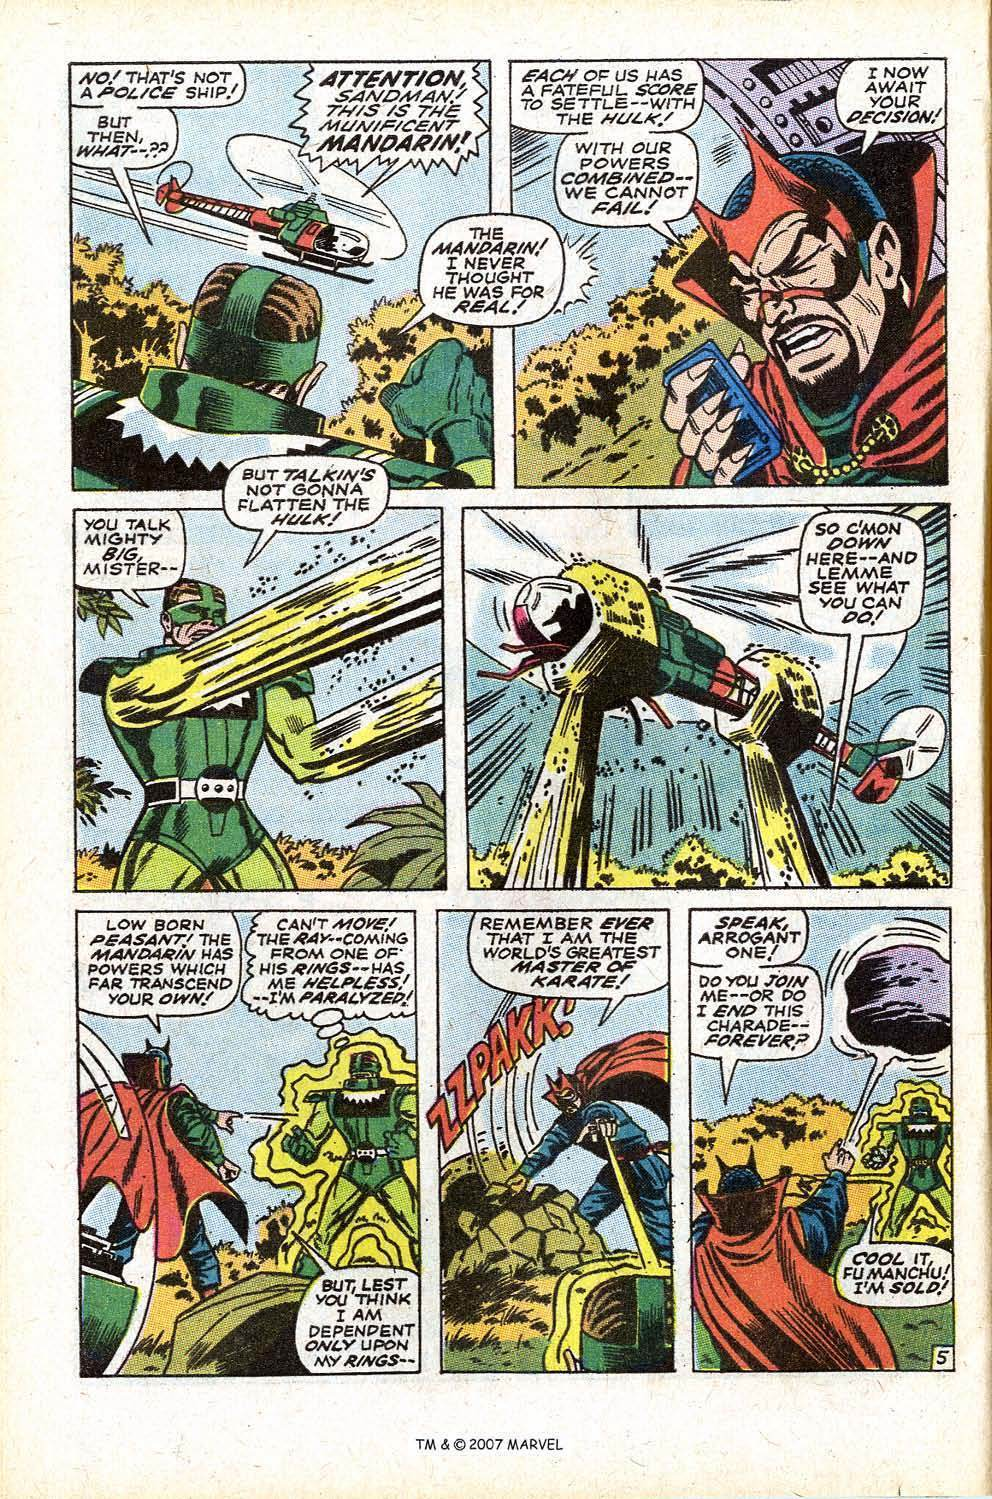 Mandarin didn't even want to fight the guy and stomps him in a panel. His ring completely paralyzes and overpowers him. This is the type of power that Iron Man regularly deals with.